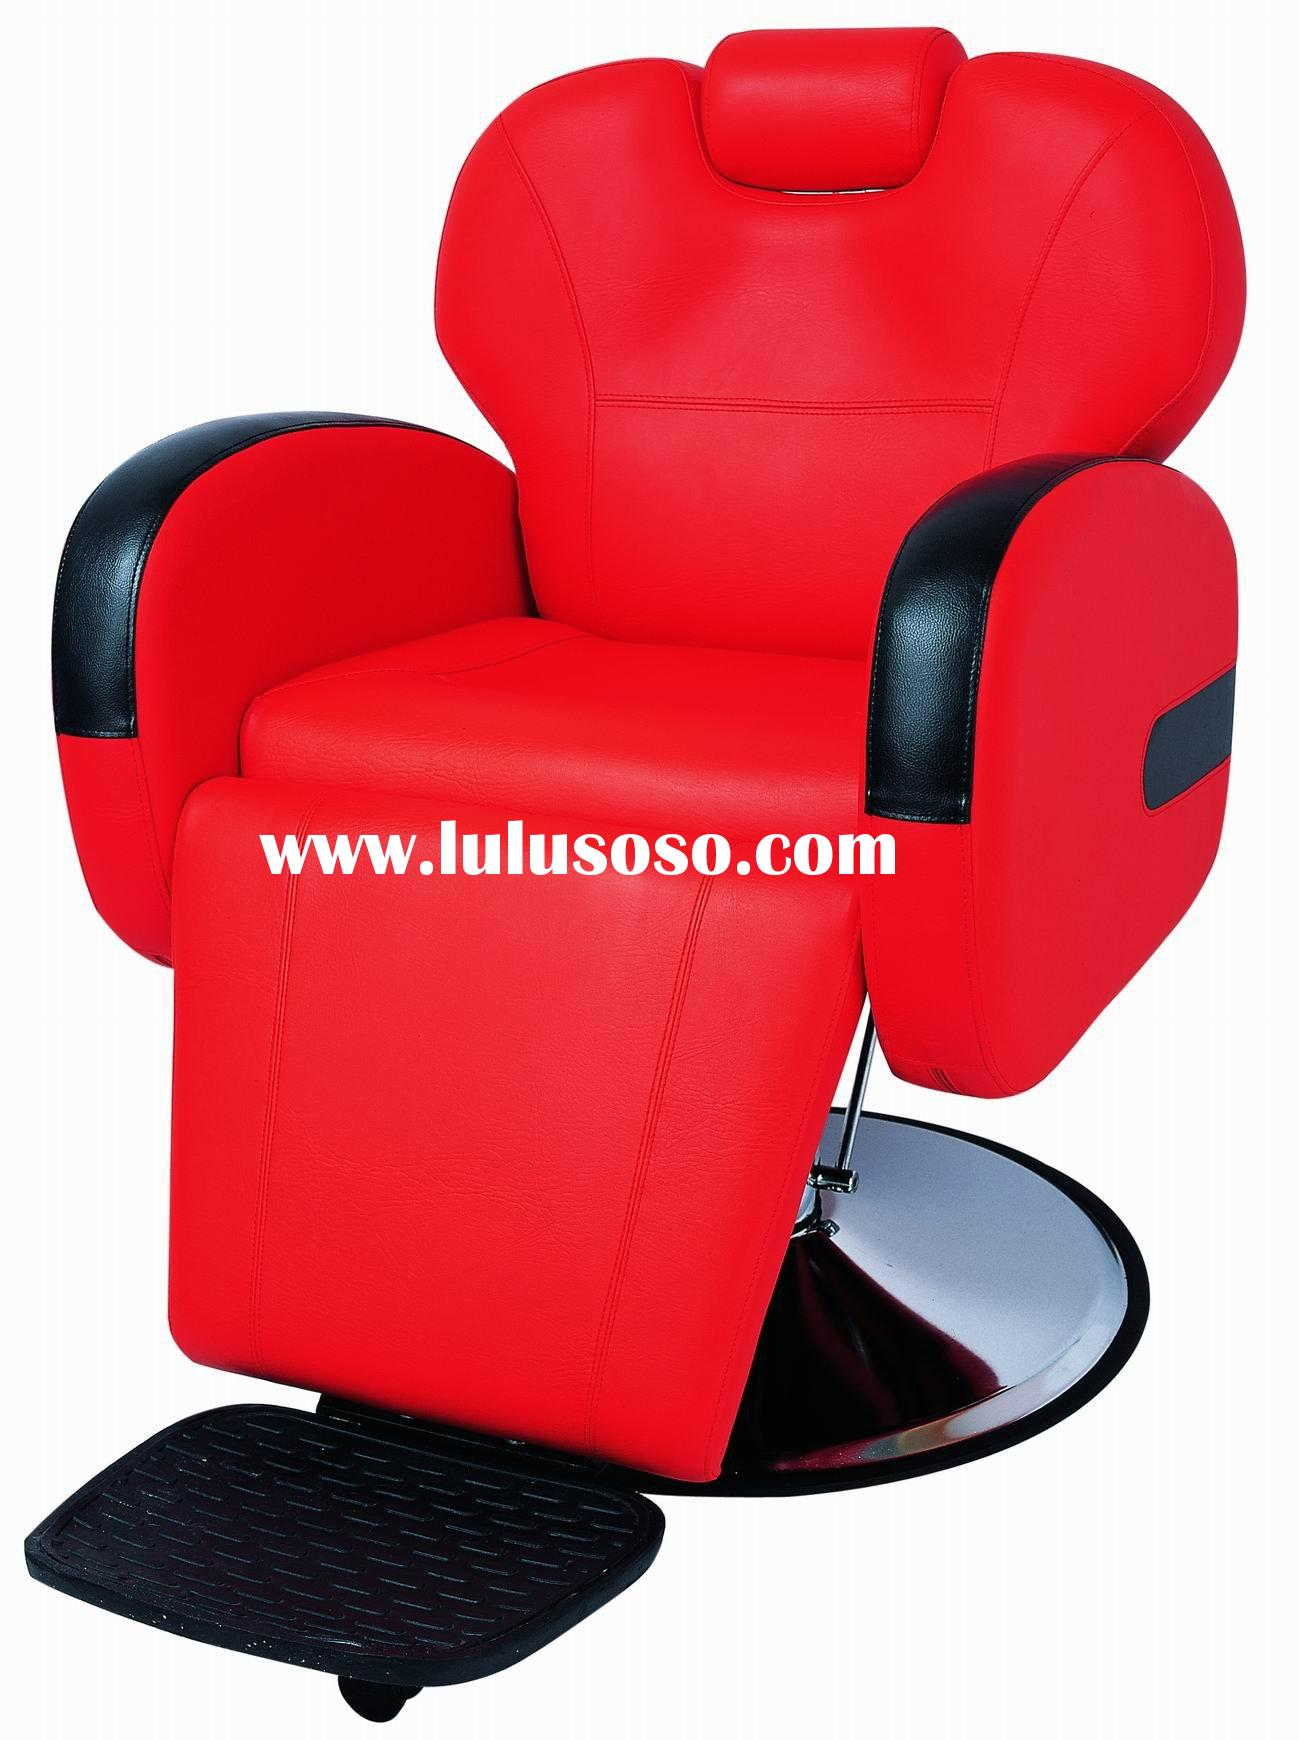 red barber chair red barber chair Manufacturers in LuLuSoSo